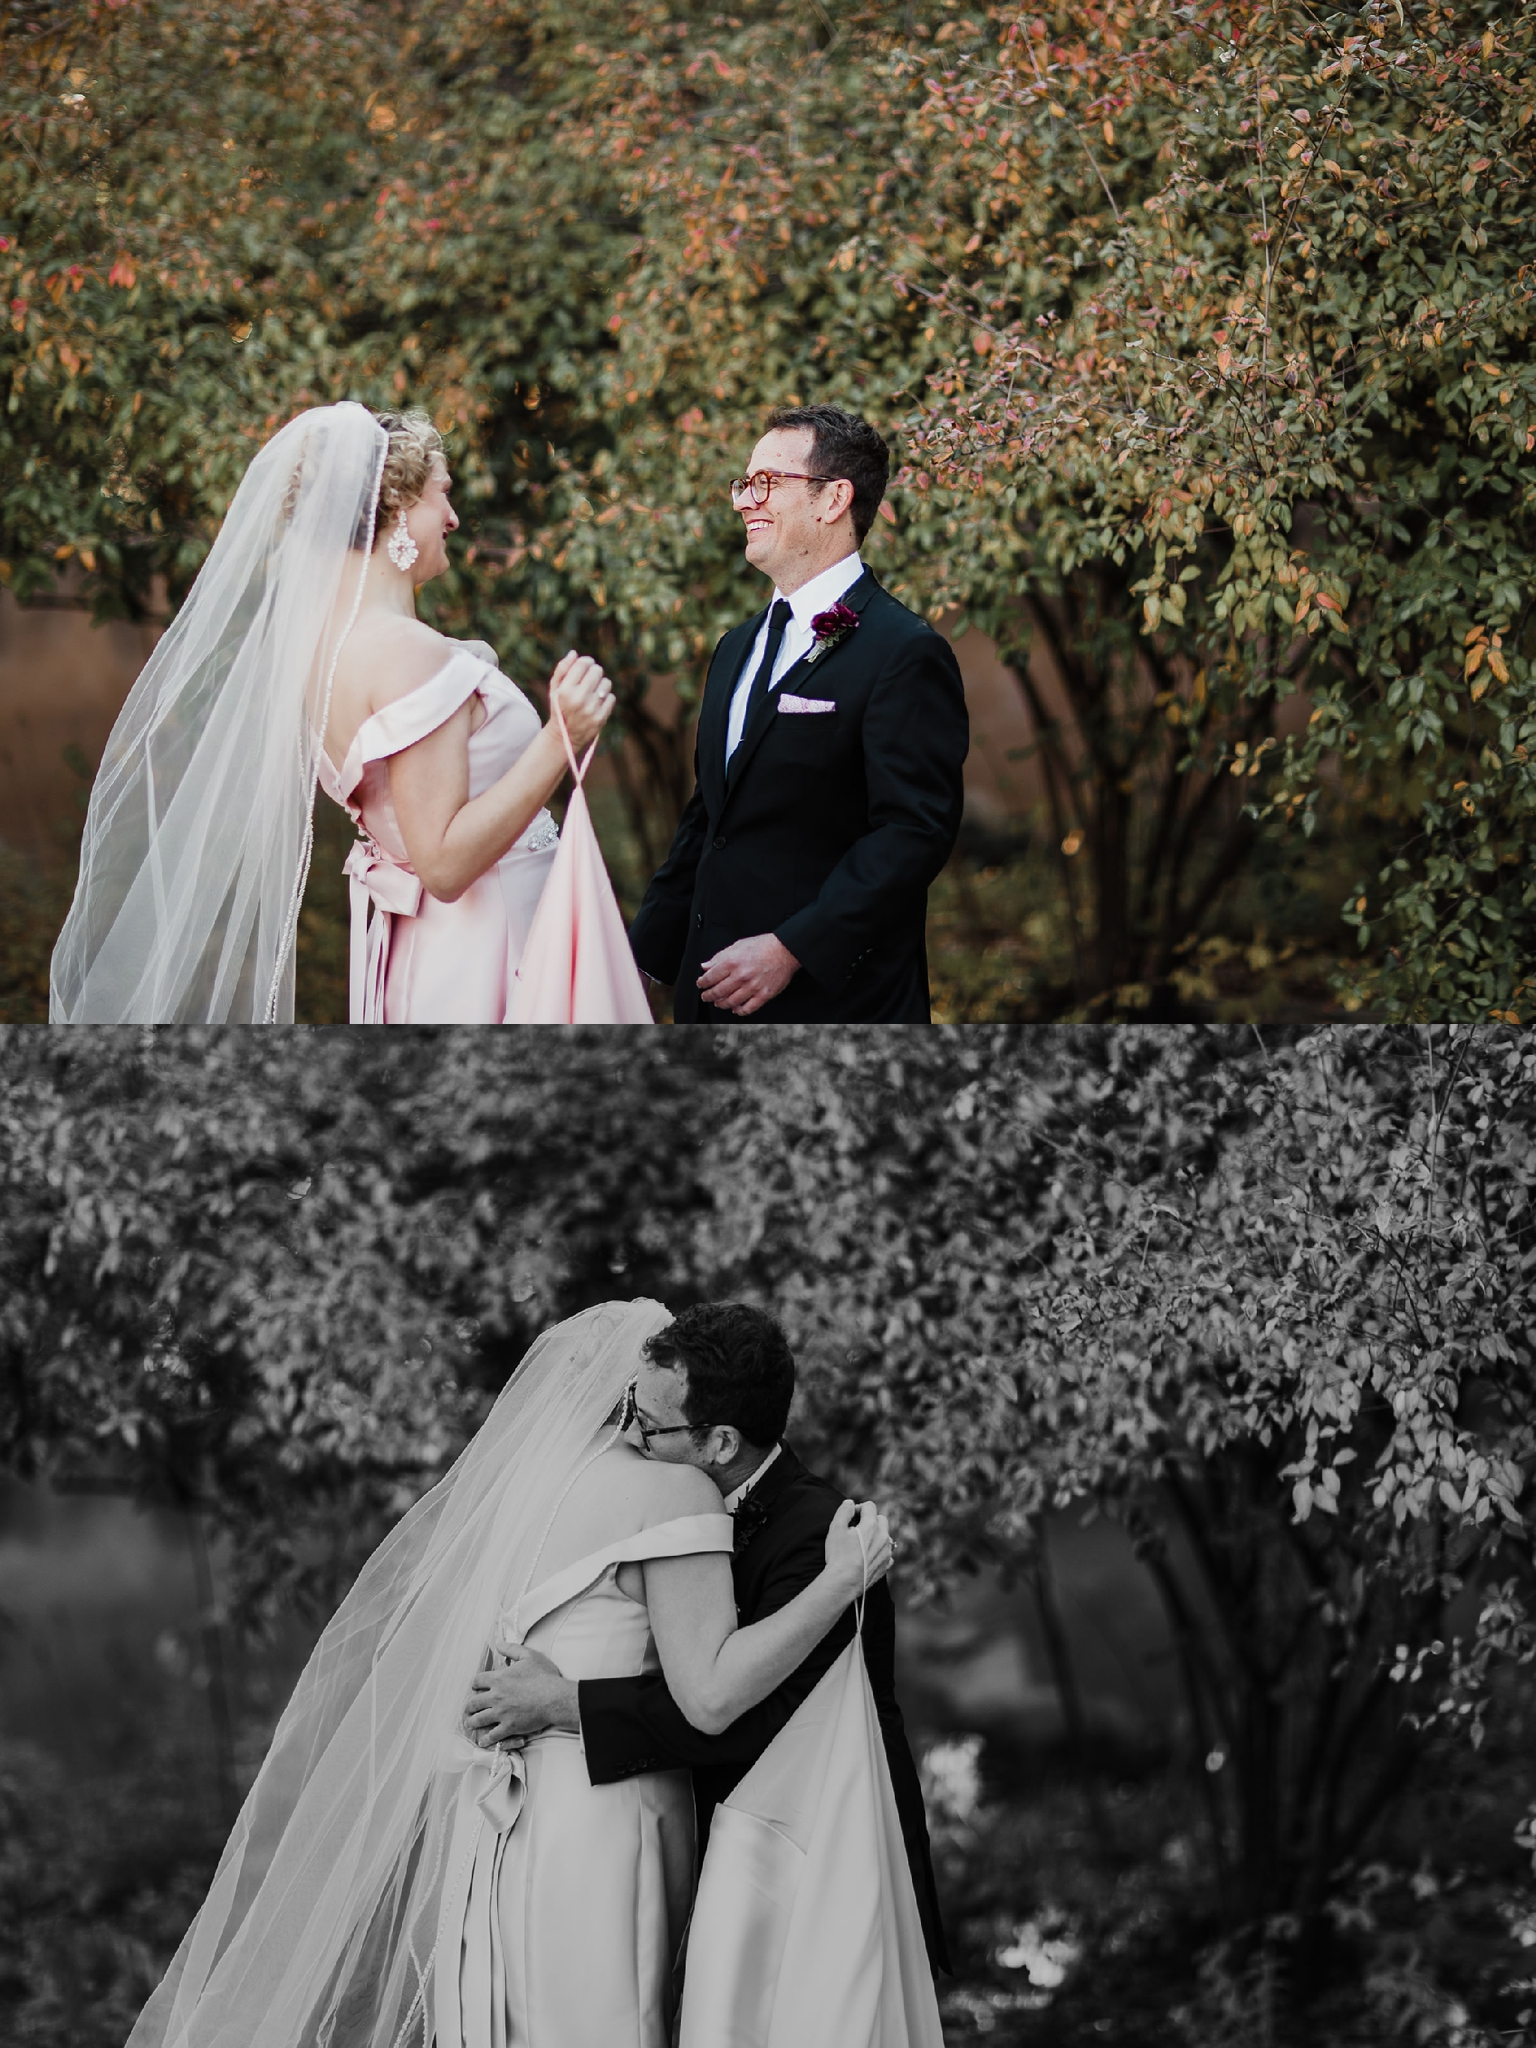 Alicia+lucia+photography+-+albuquerque+wedding+photographer+-+santa+fe+wedding+photography+-+new+mexico+wedding+photographer+-+new+mexico+wedding+-+albuquerque+wedding+-+los+poblanos+wedding+-+fall+wedding_0013.jpg